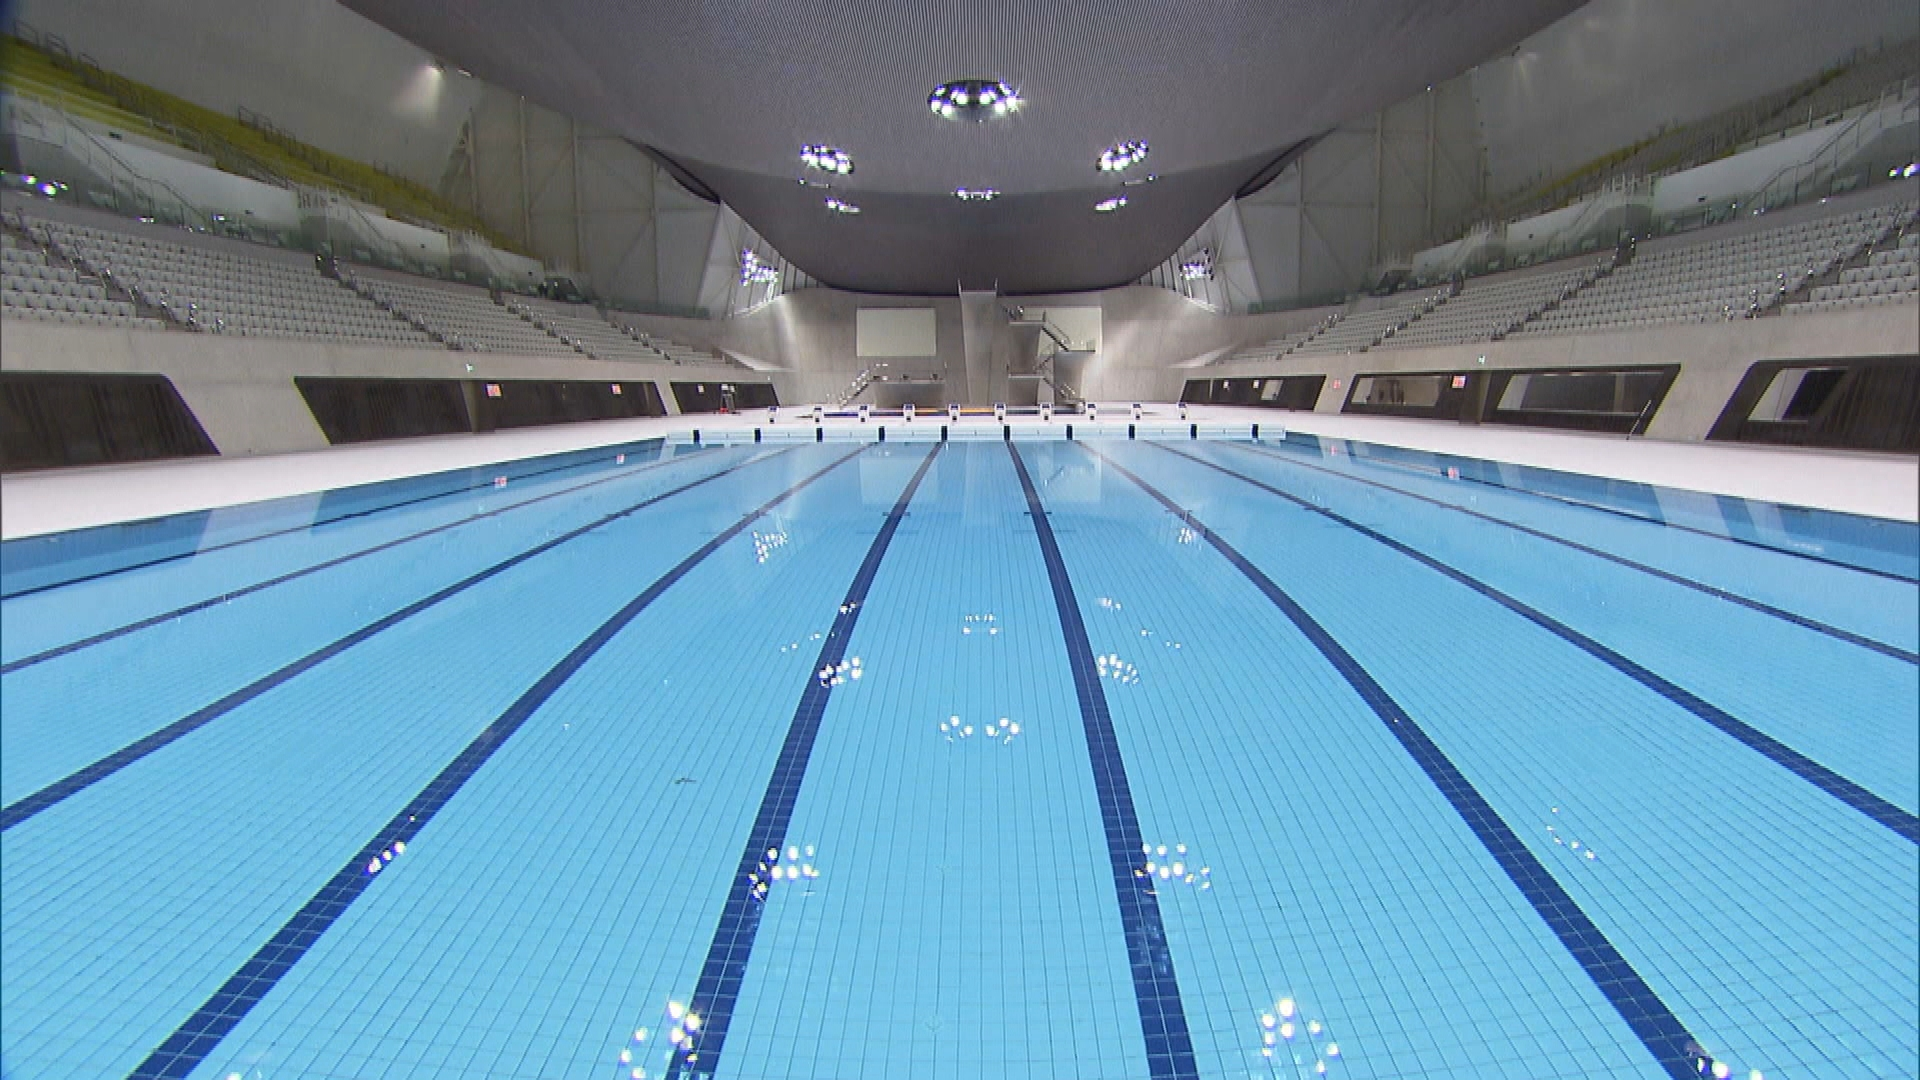 Designing a Fast Pool